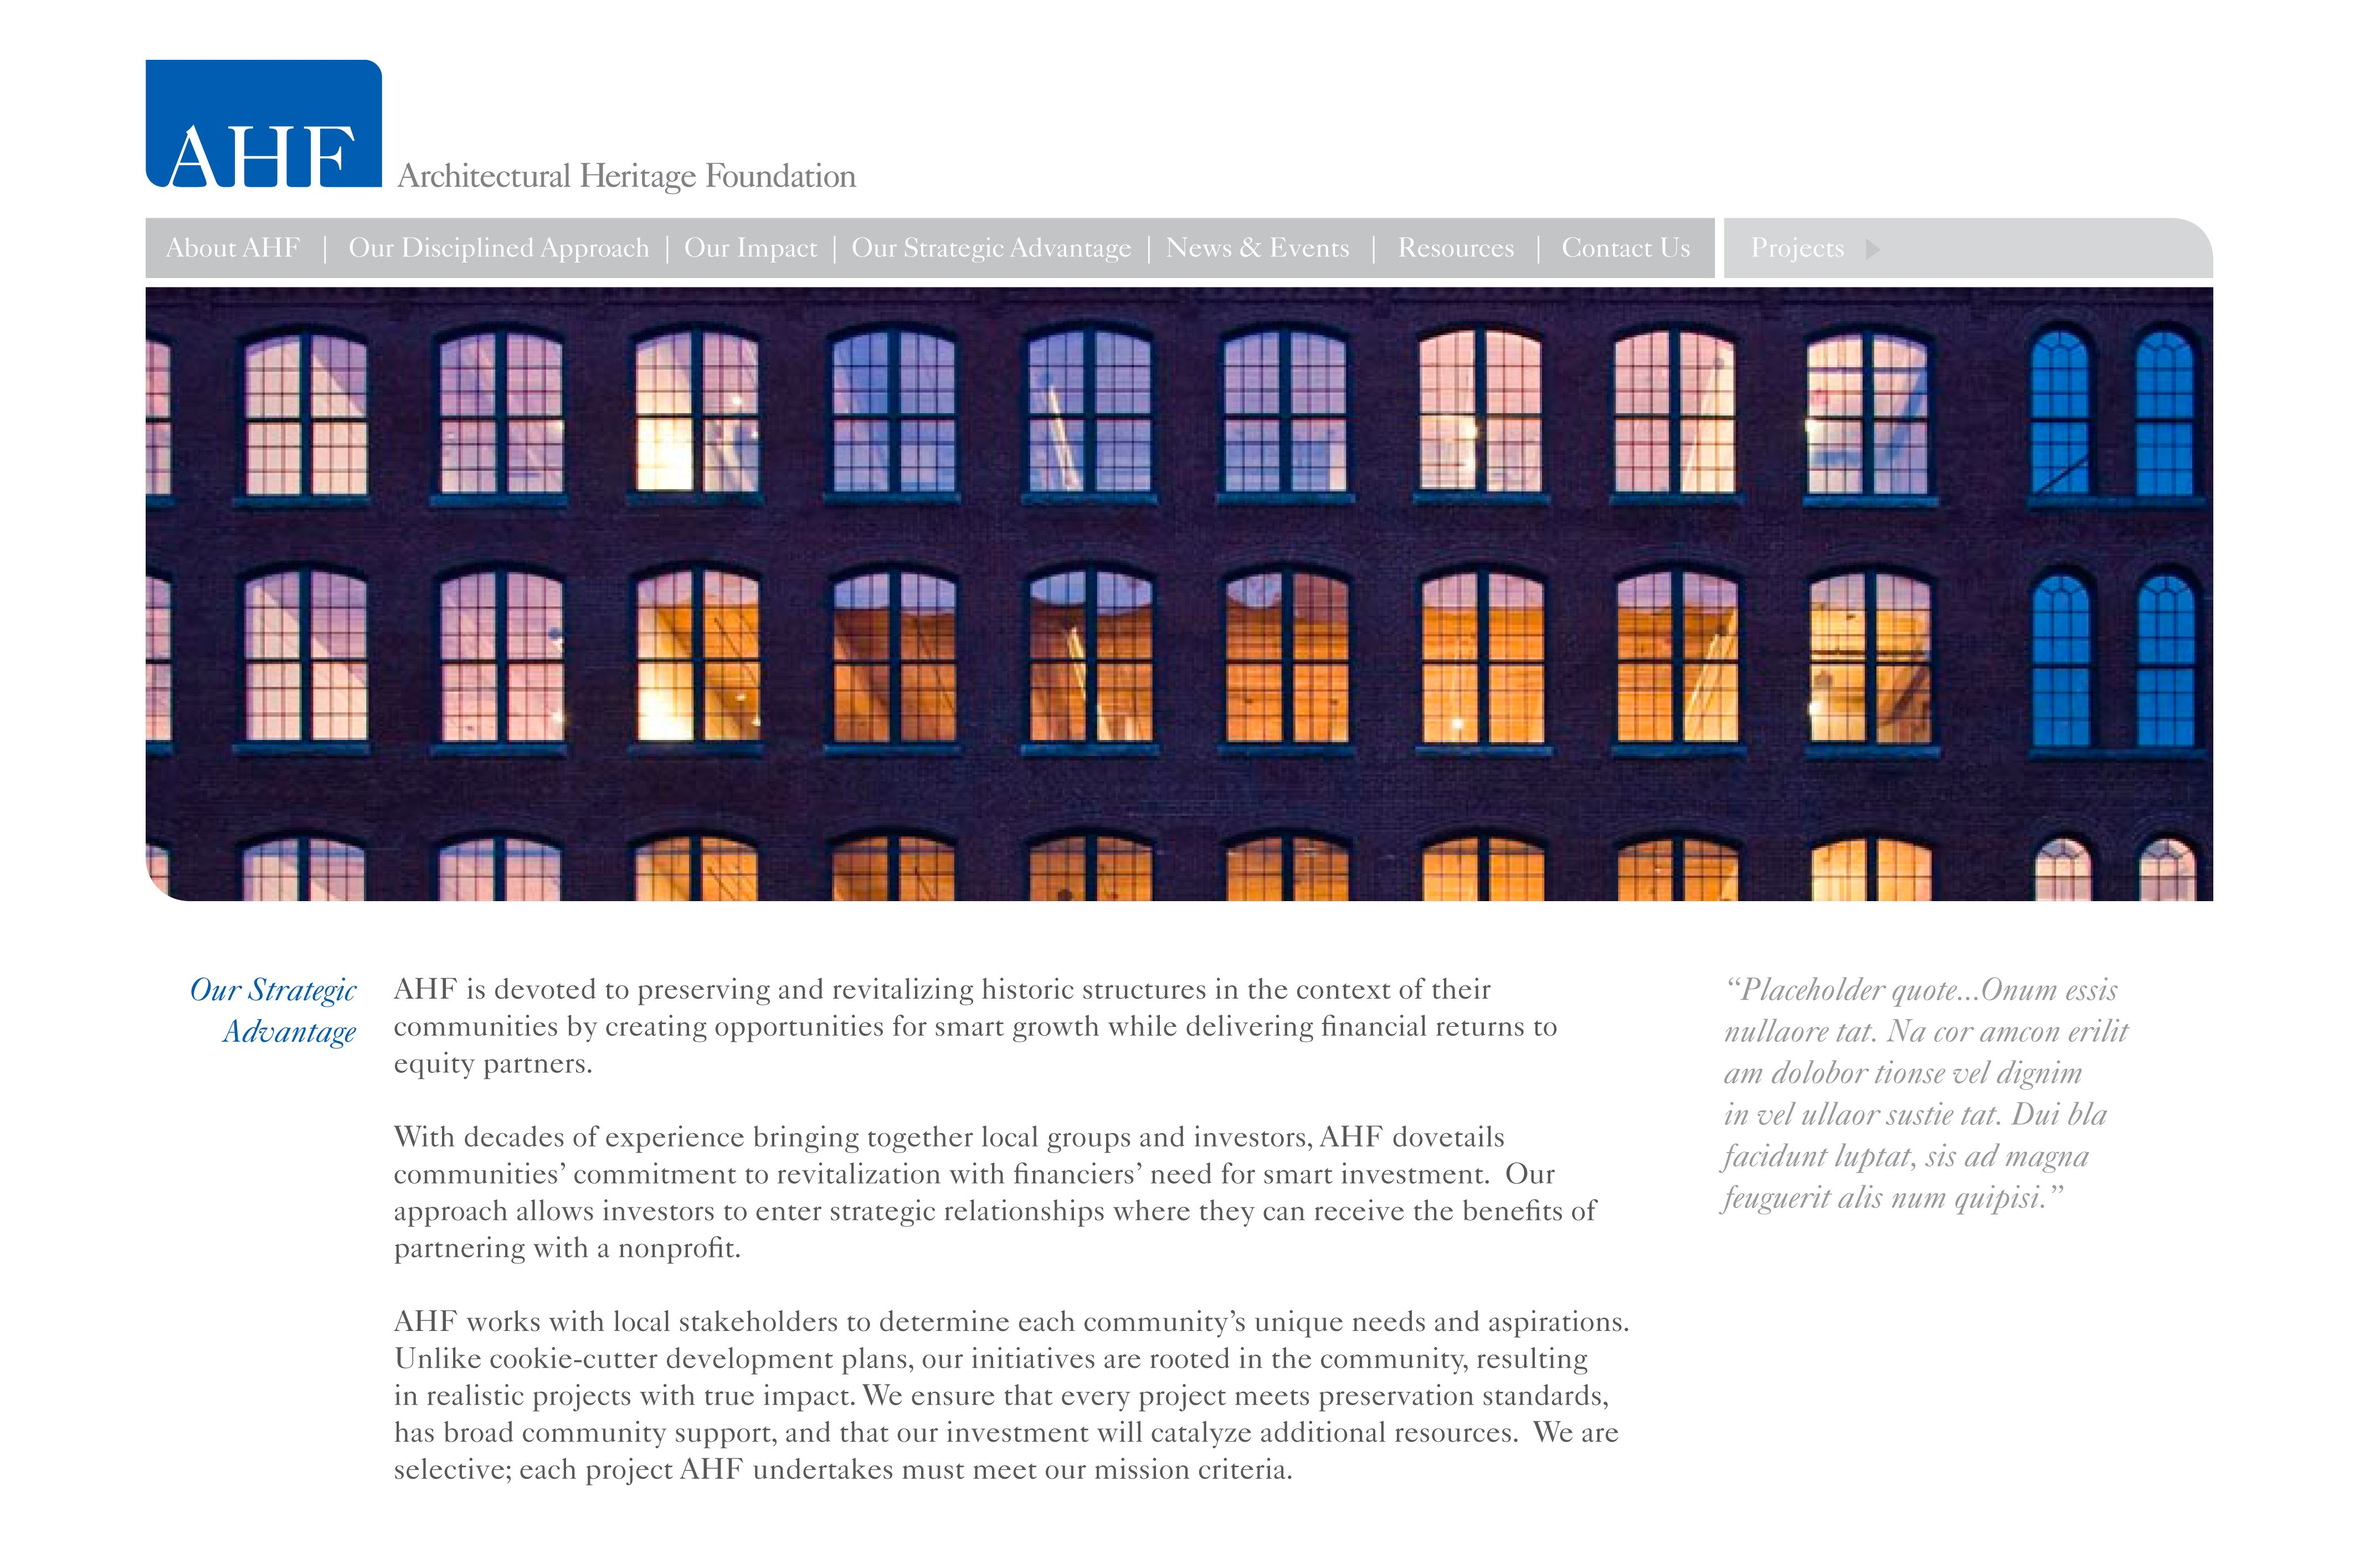 Inspirational Architectural Heritage Foundation